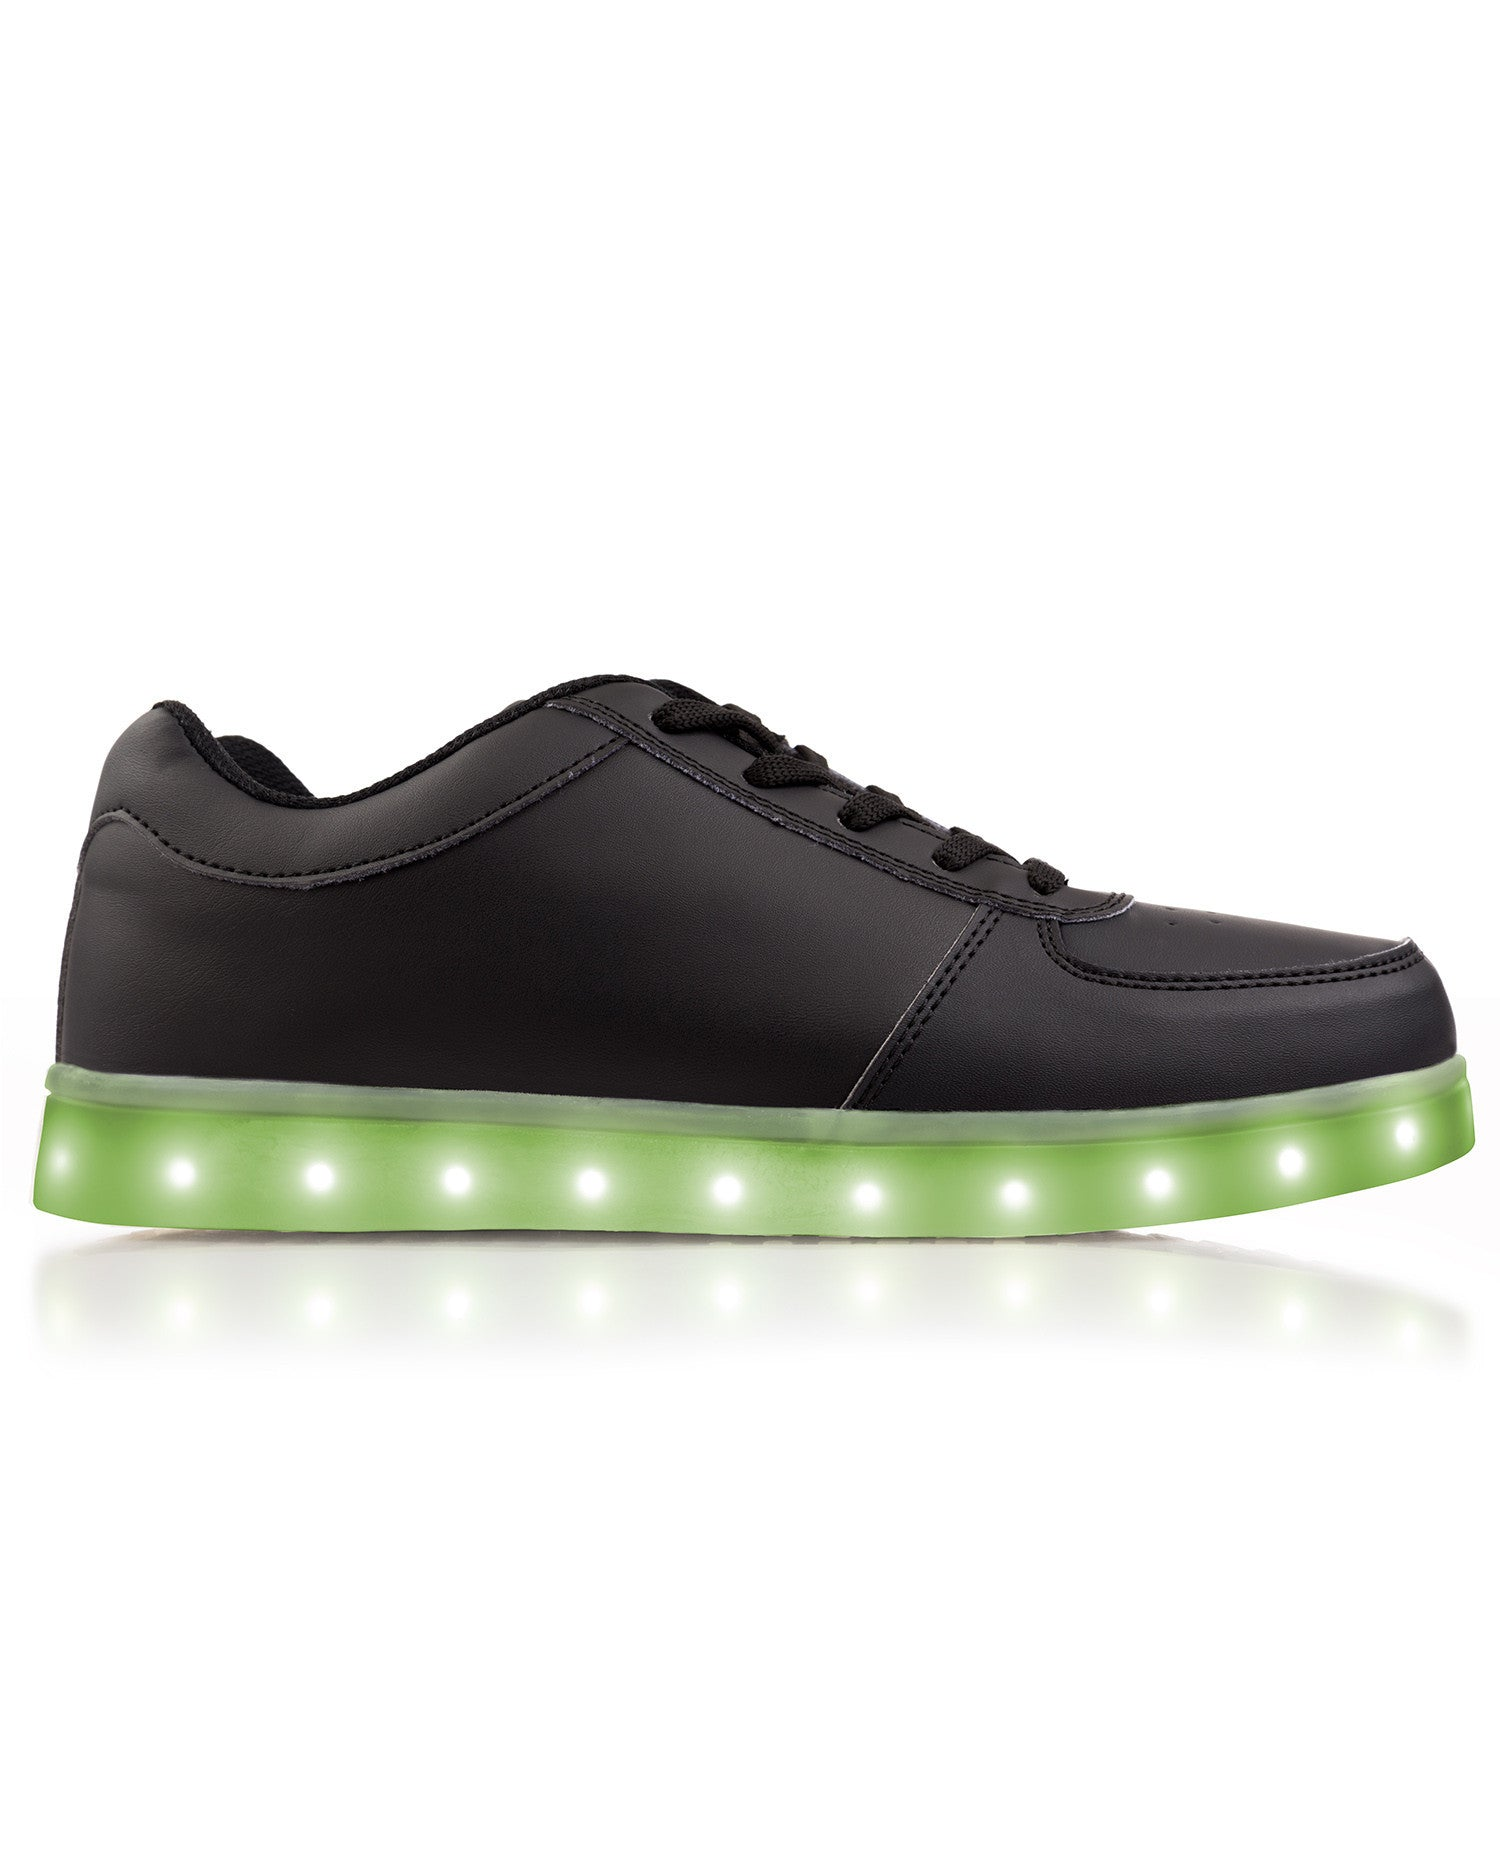 Electric Shoes - All Black - Electric Styles | World's Number 1 Light Up Shoe Store - {product_type}} - Black / Men's 6 - 1